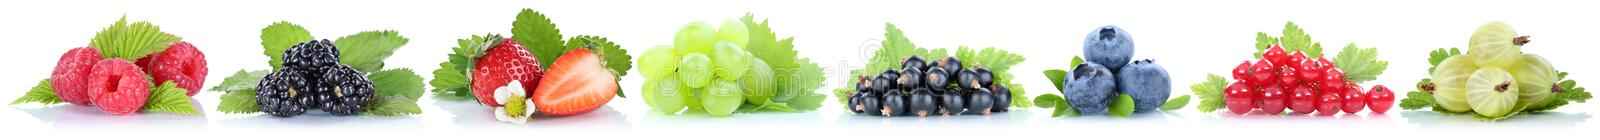 Collection of berries fruits grapes strawberries blueberries red royalty free stock photography